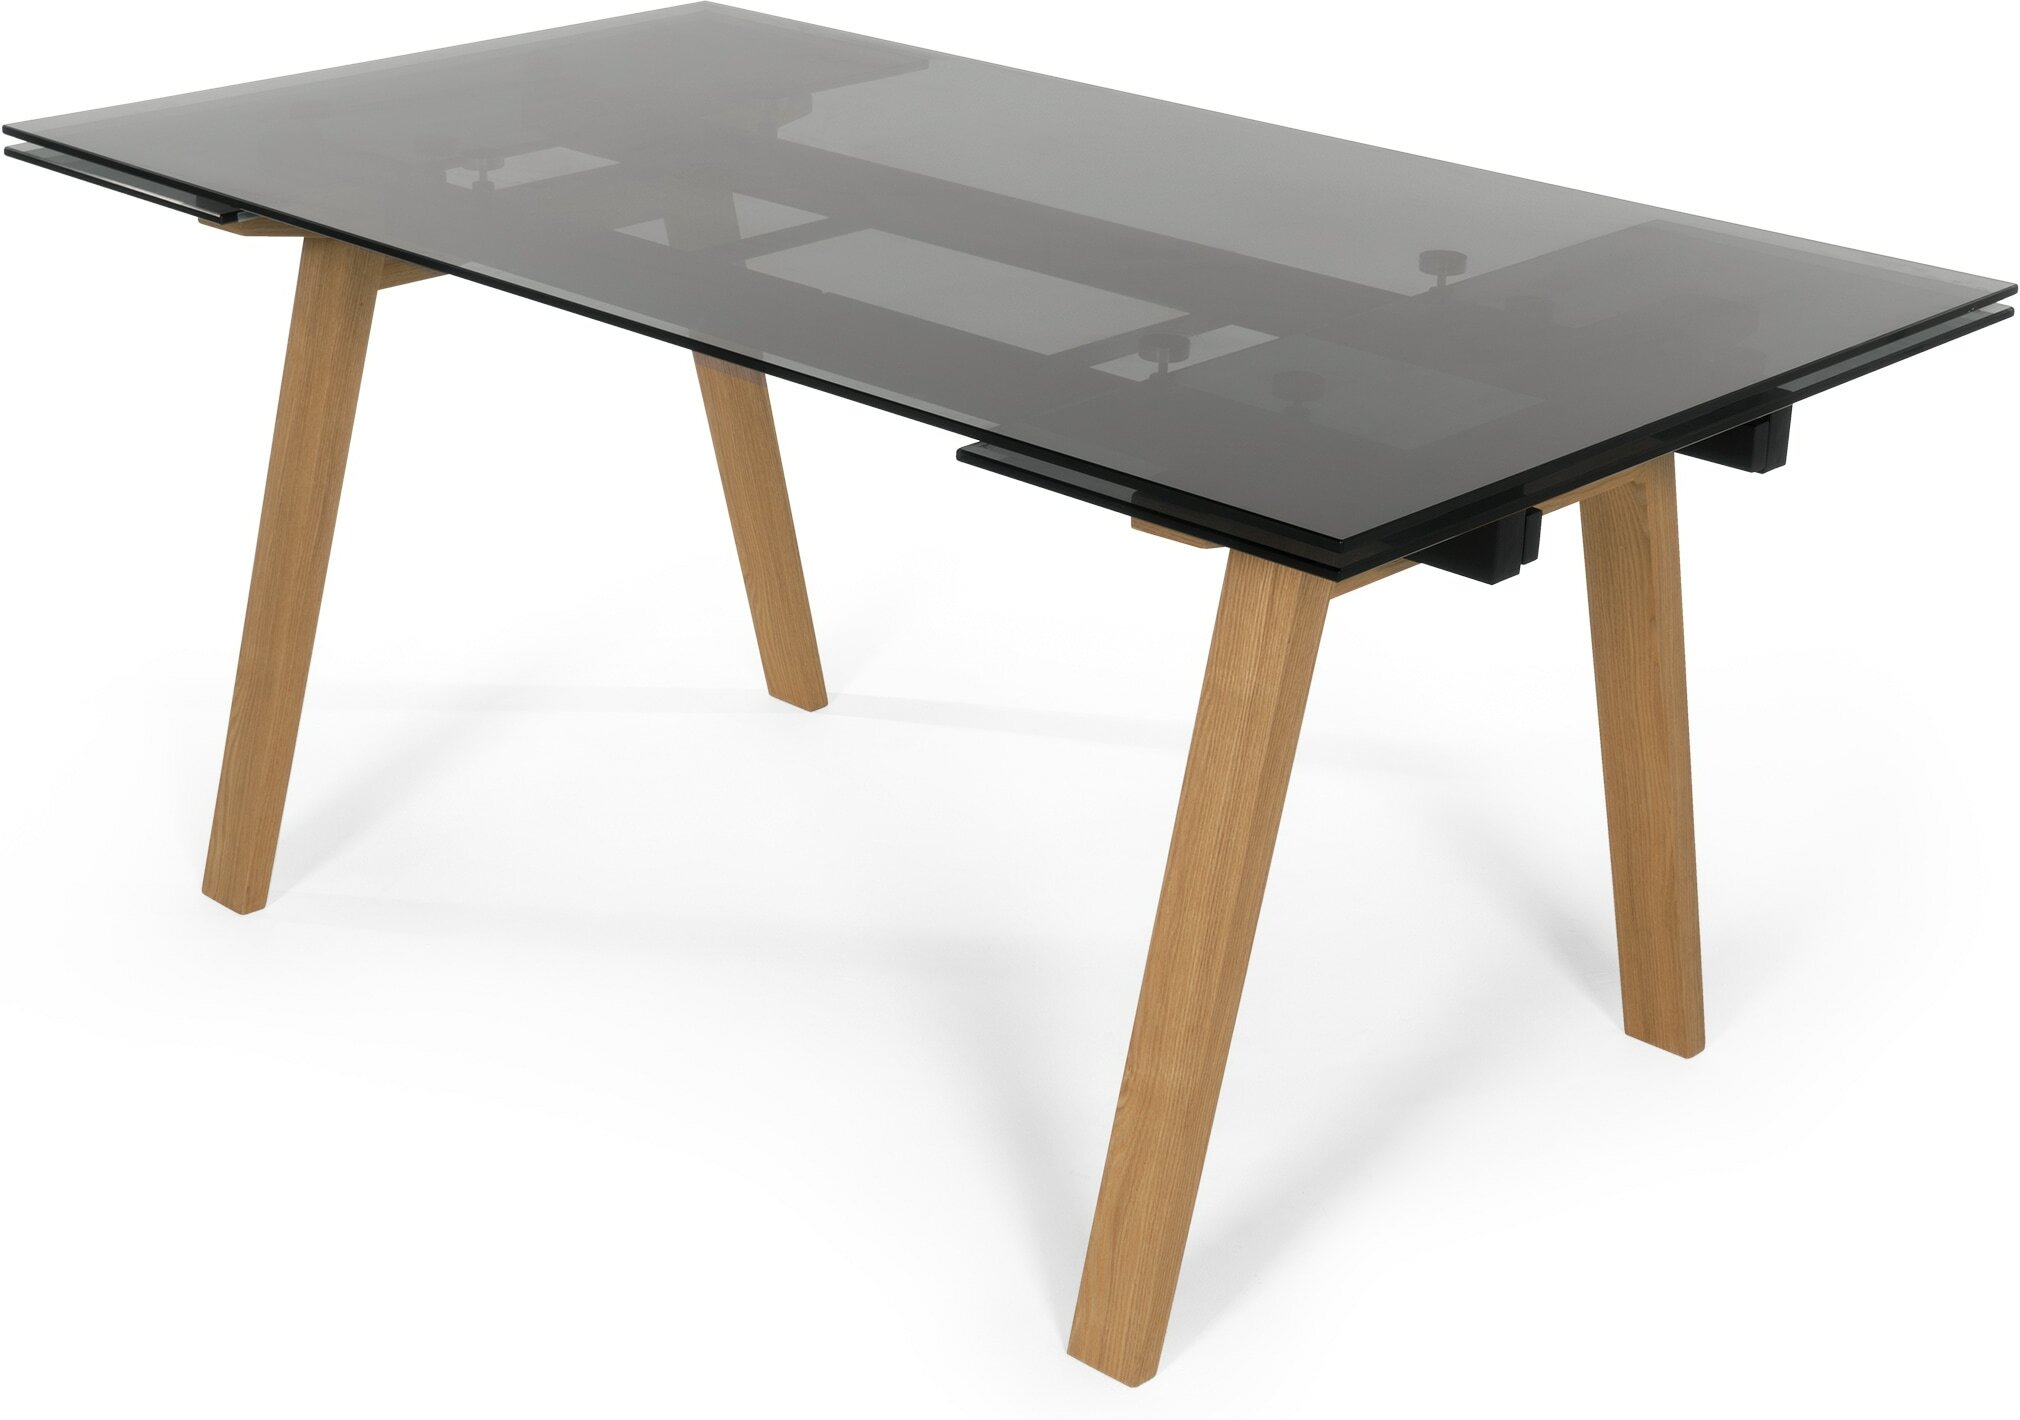 Buy cheap extending glass dining table compare tables for Dining table deals